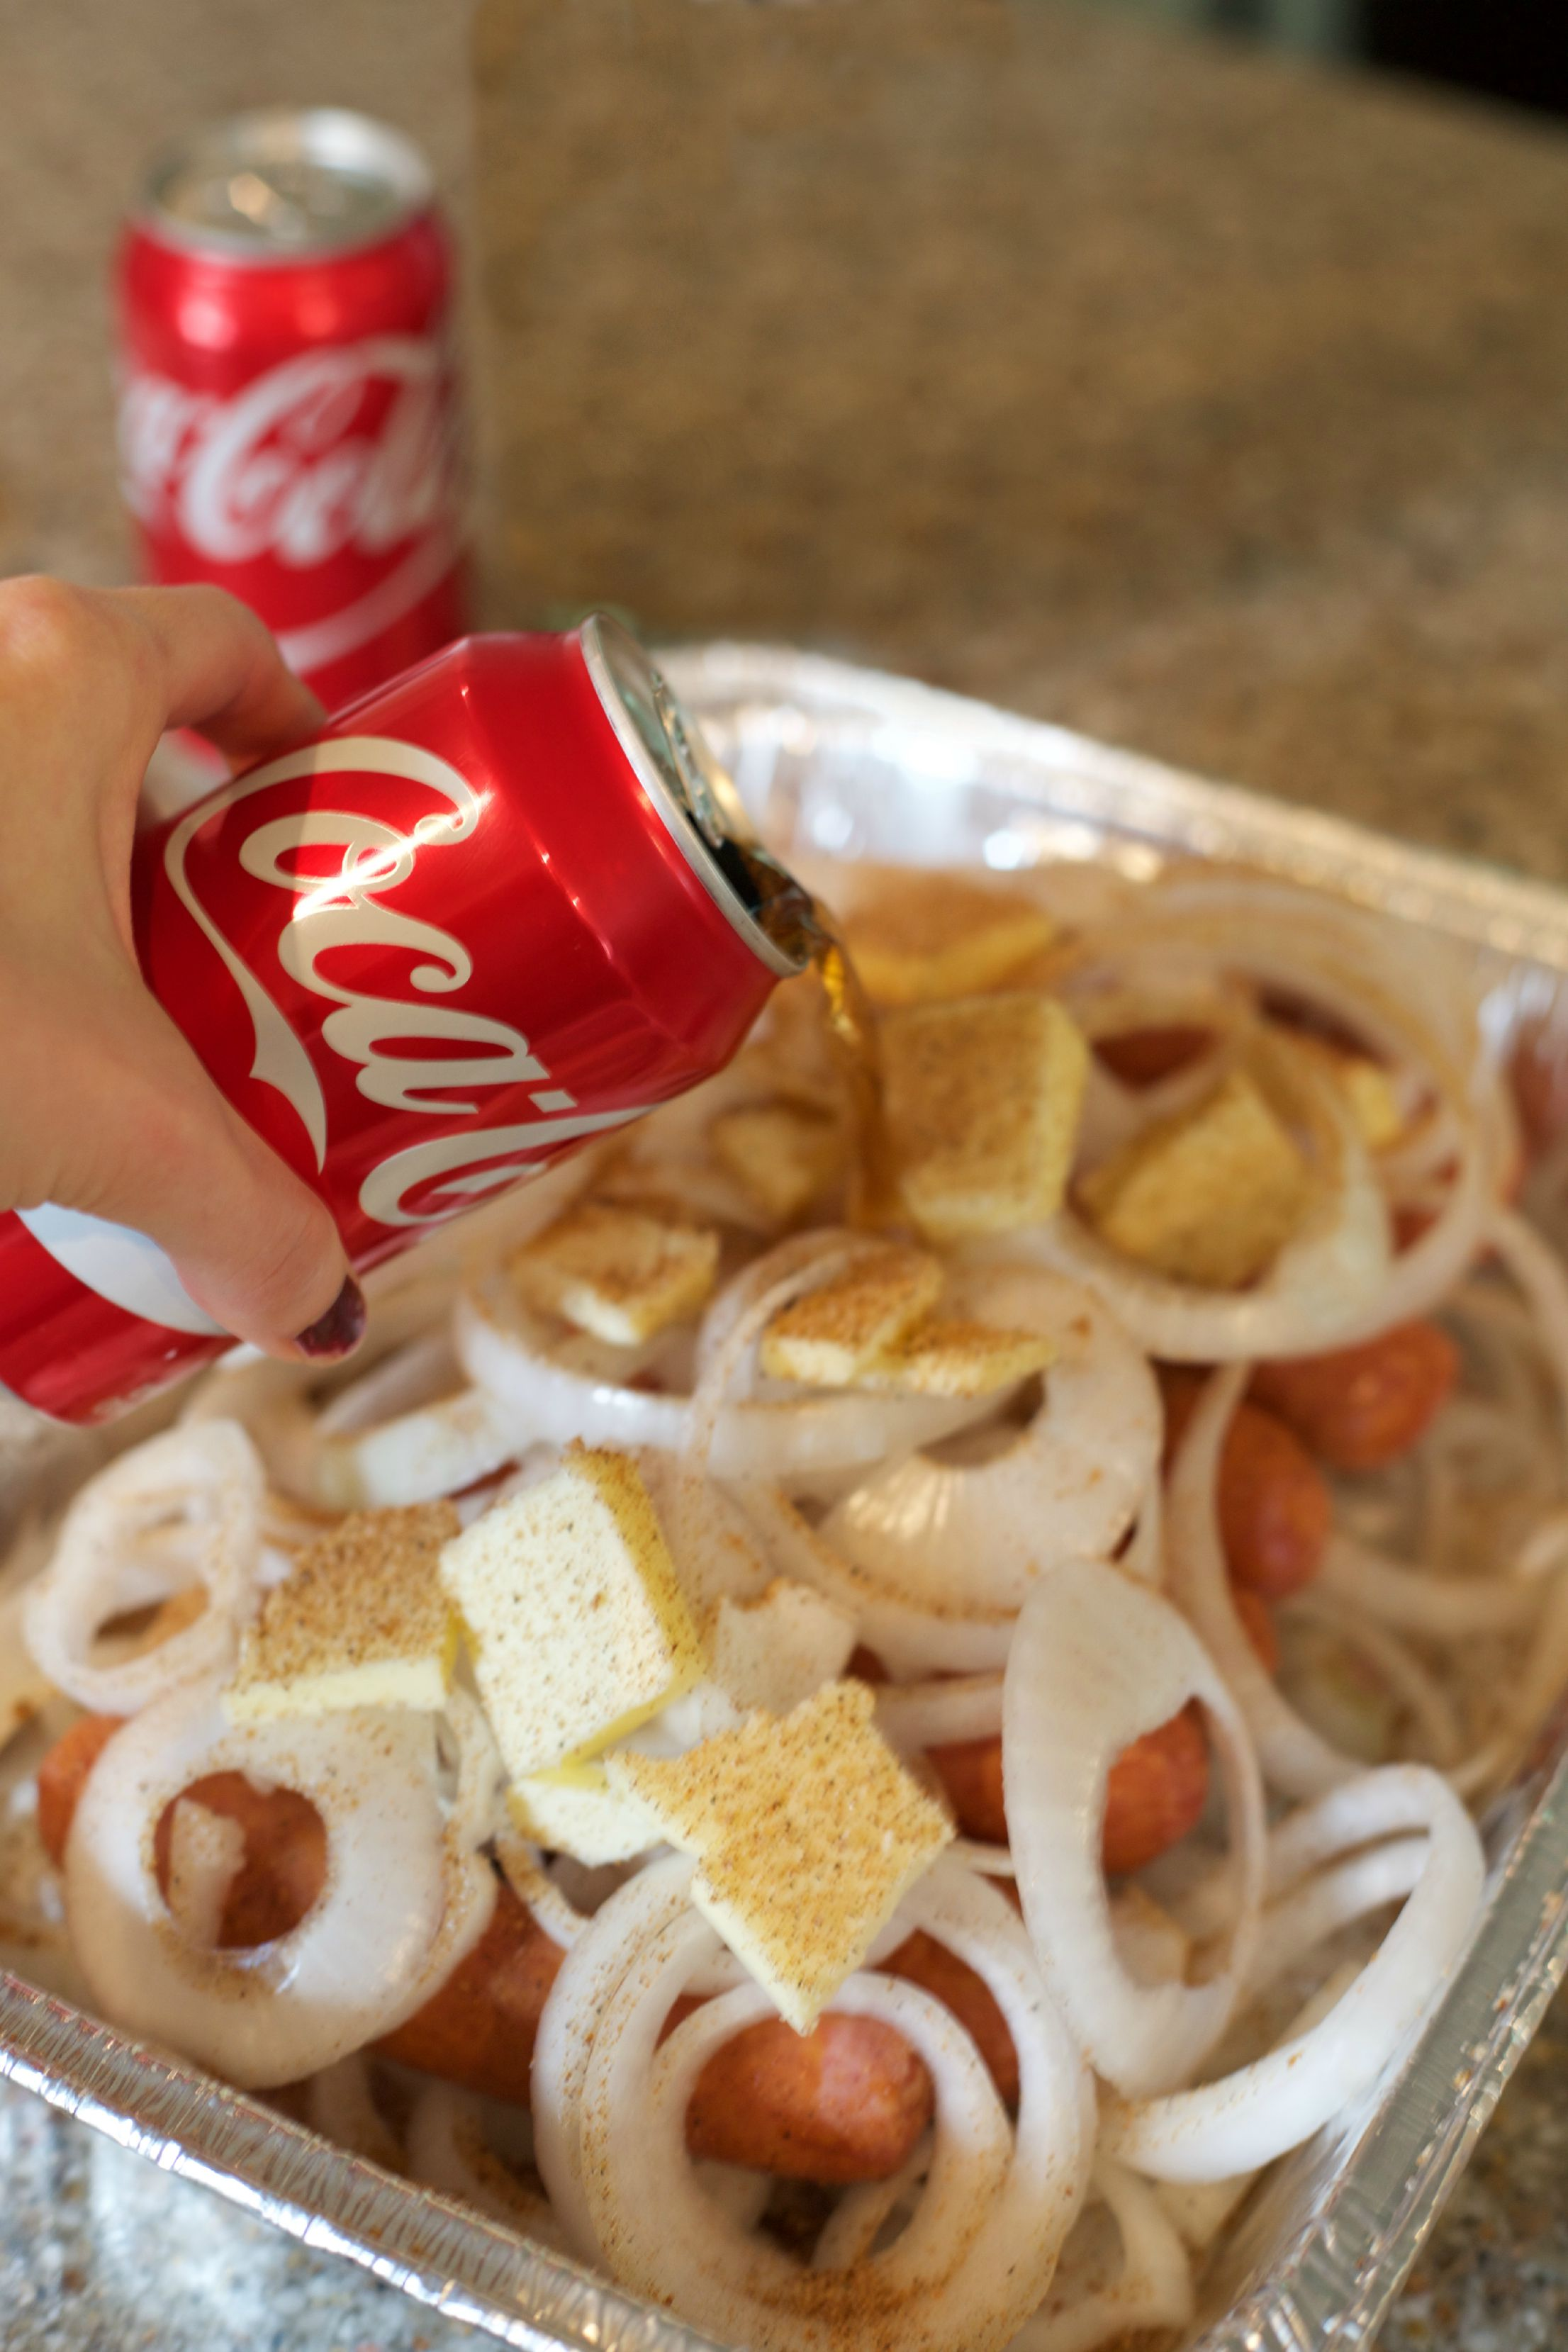 Coca-Cola Fall Football Sam's Club | How to Throw a Tailgate Party | Coca-Cola Bratwurst Recipe |PartiesforPennies.com | #tailgate #floridagators #universityofflorida #shareyourspirit